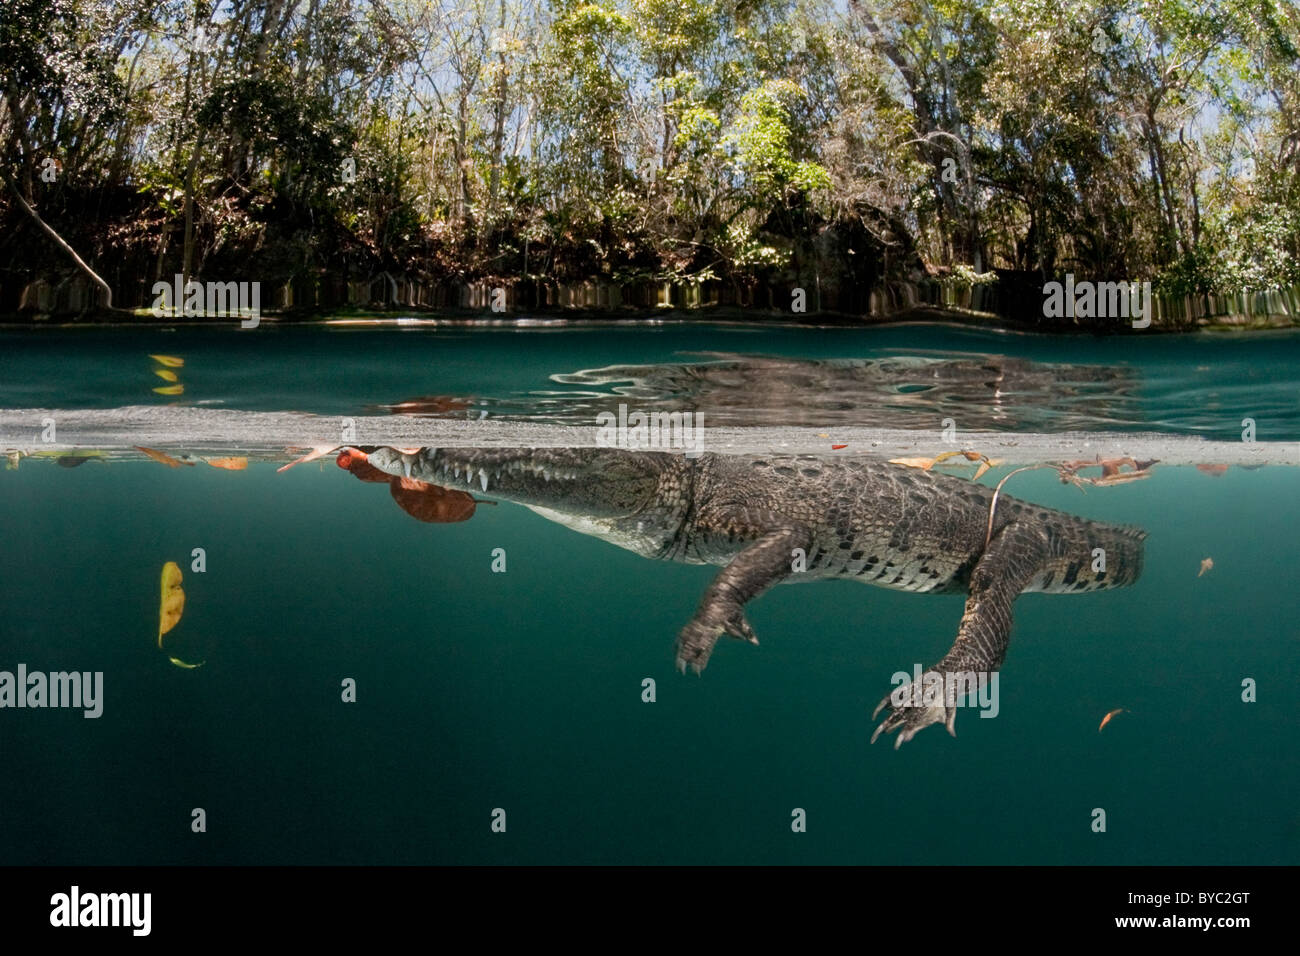 morelet's crocodile, crocodylus moreletii, yucatan peninsula, mexico